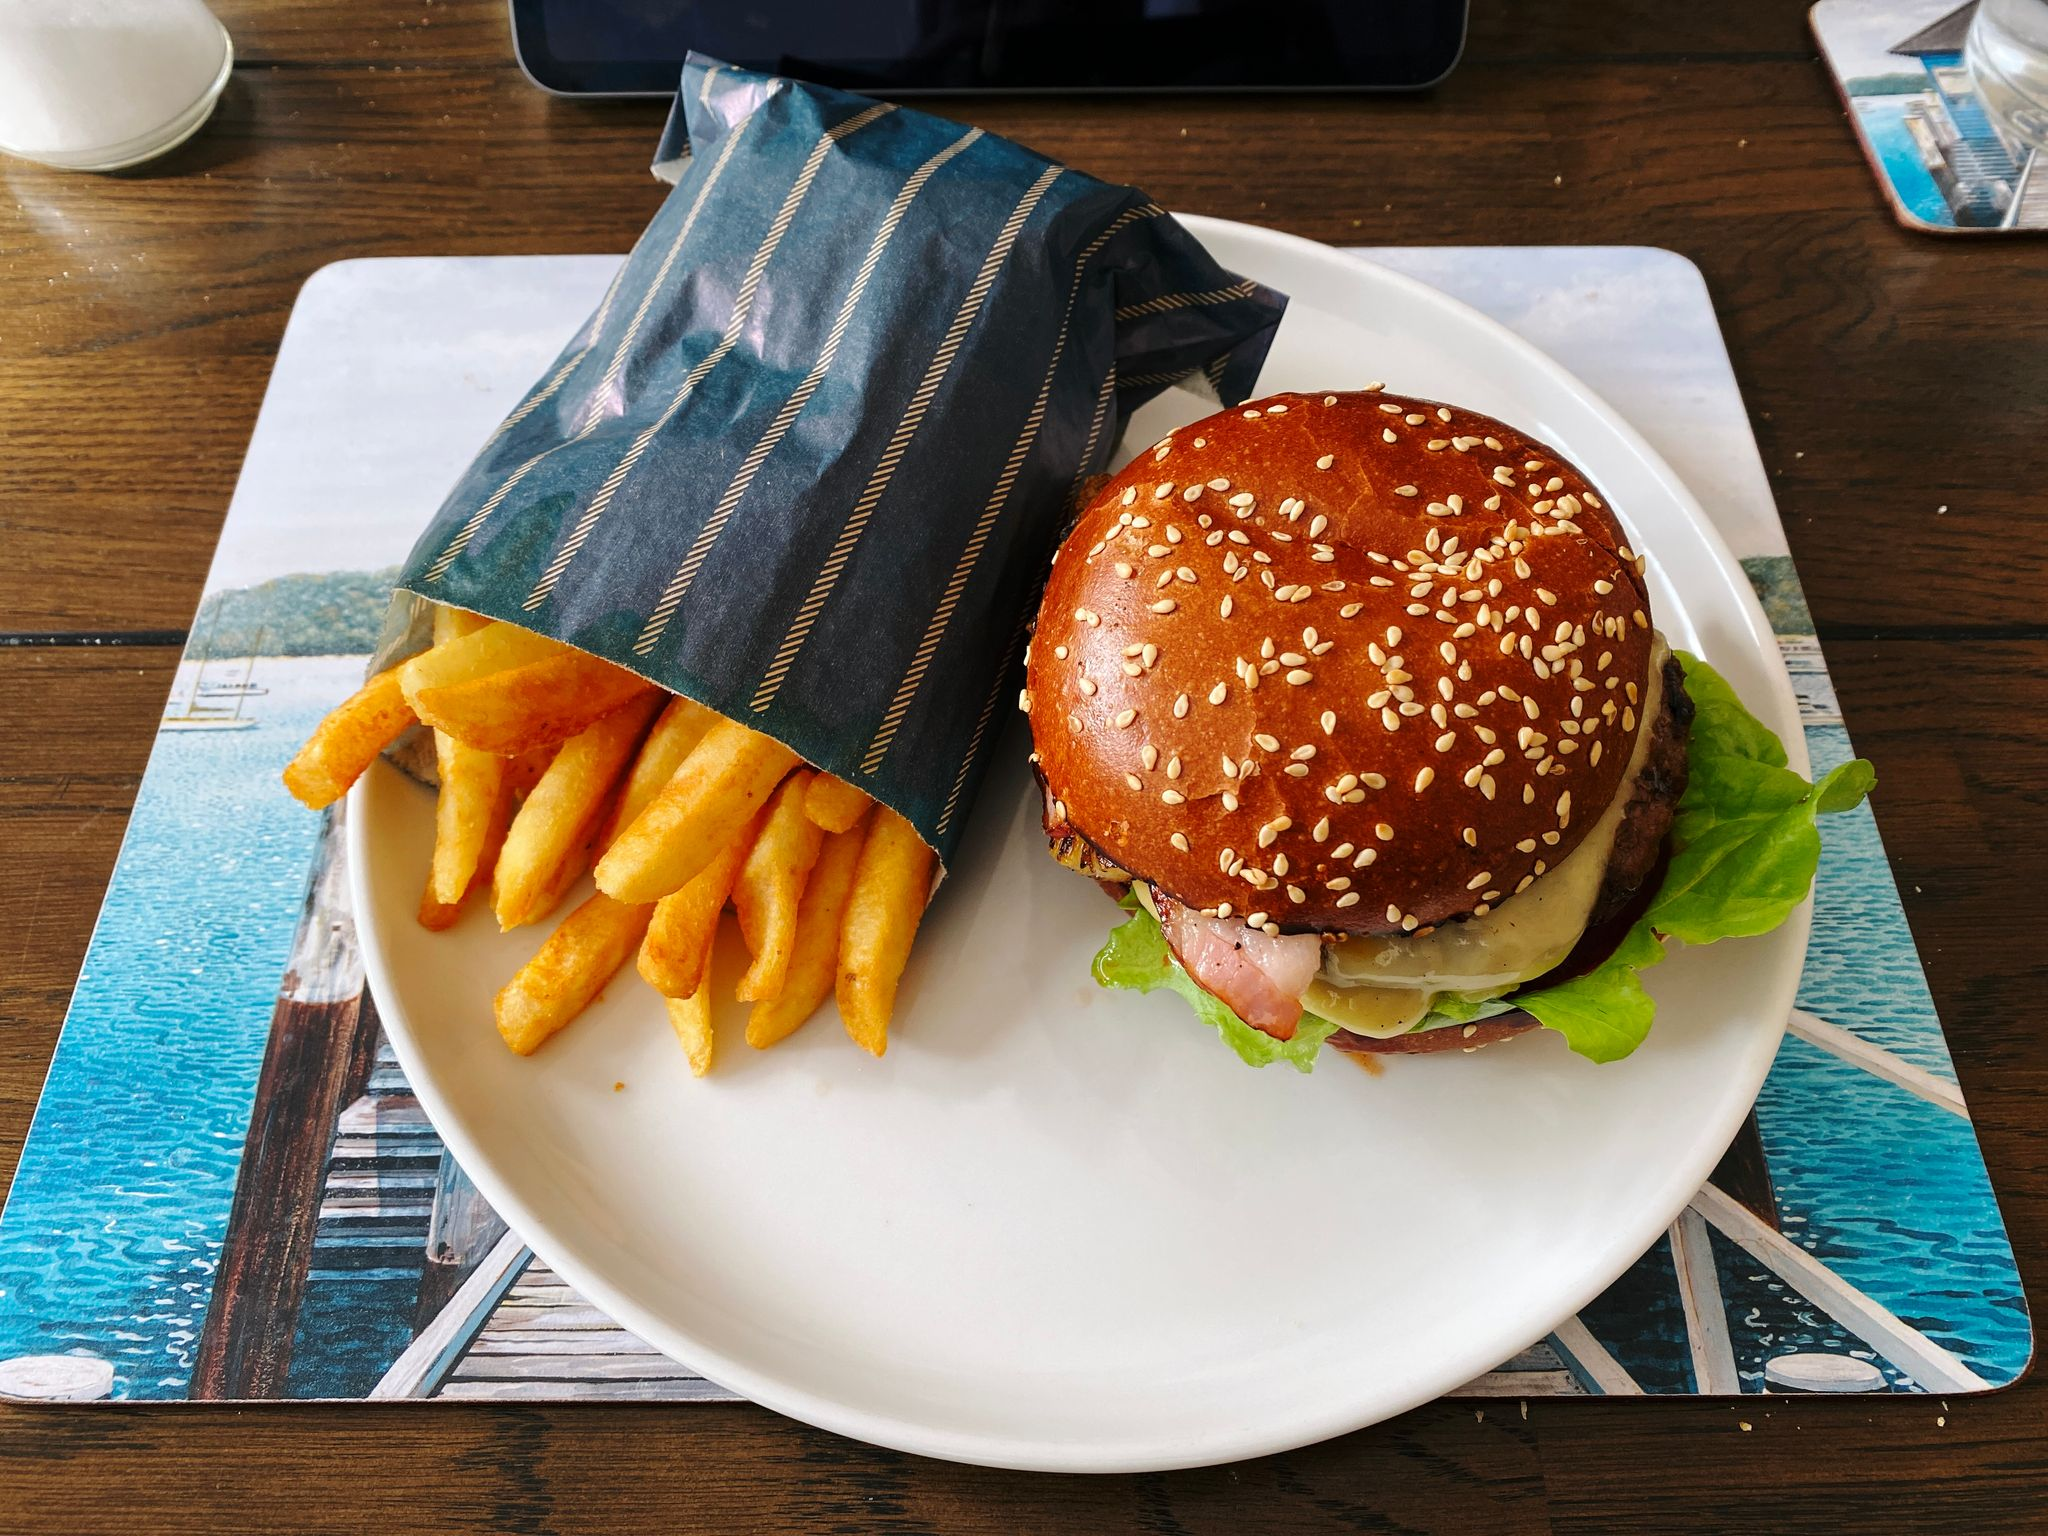 A photo of a burger on a seeded bun with a bag of hot chips next to it, sitting on a plate.